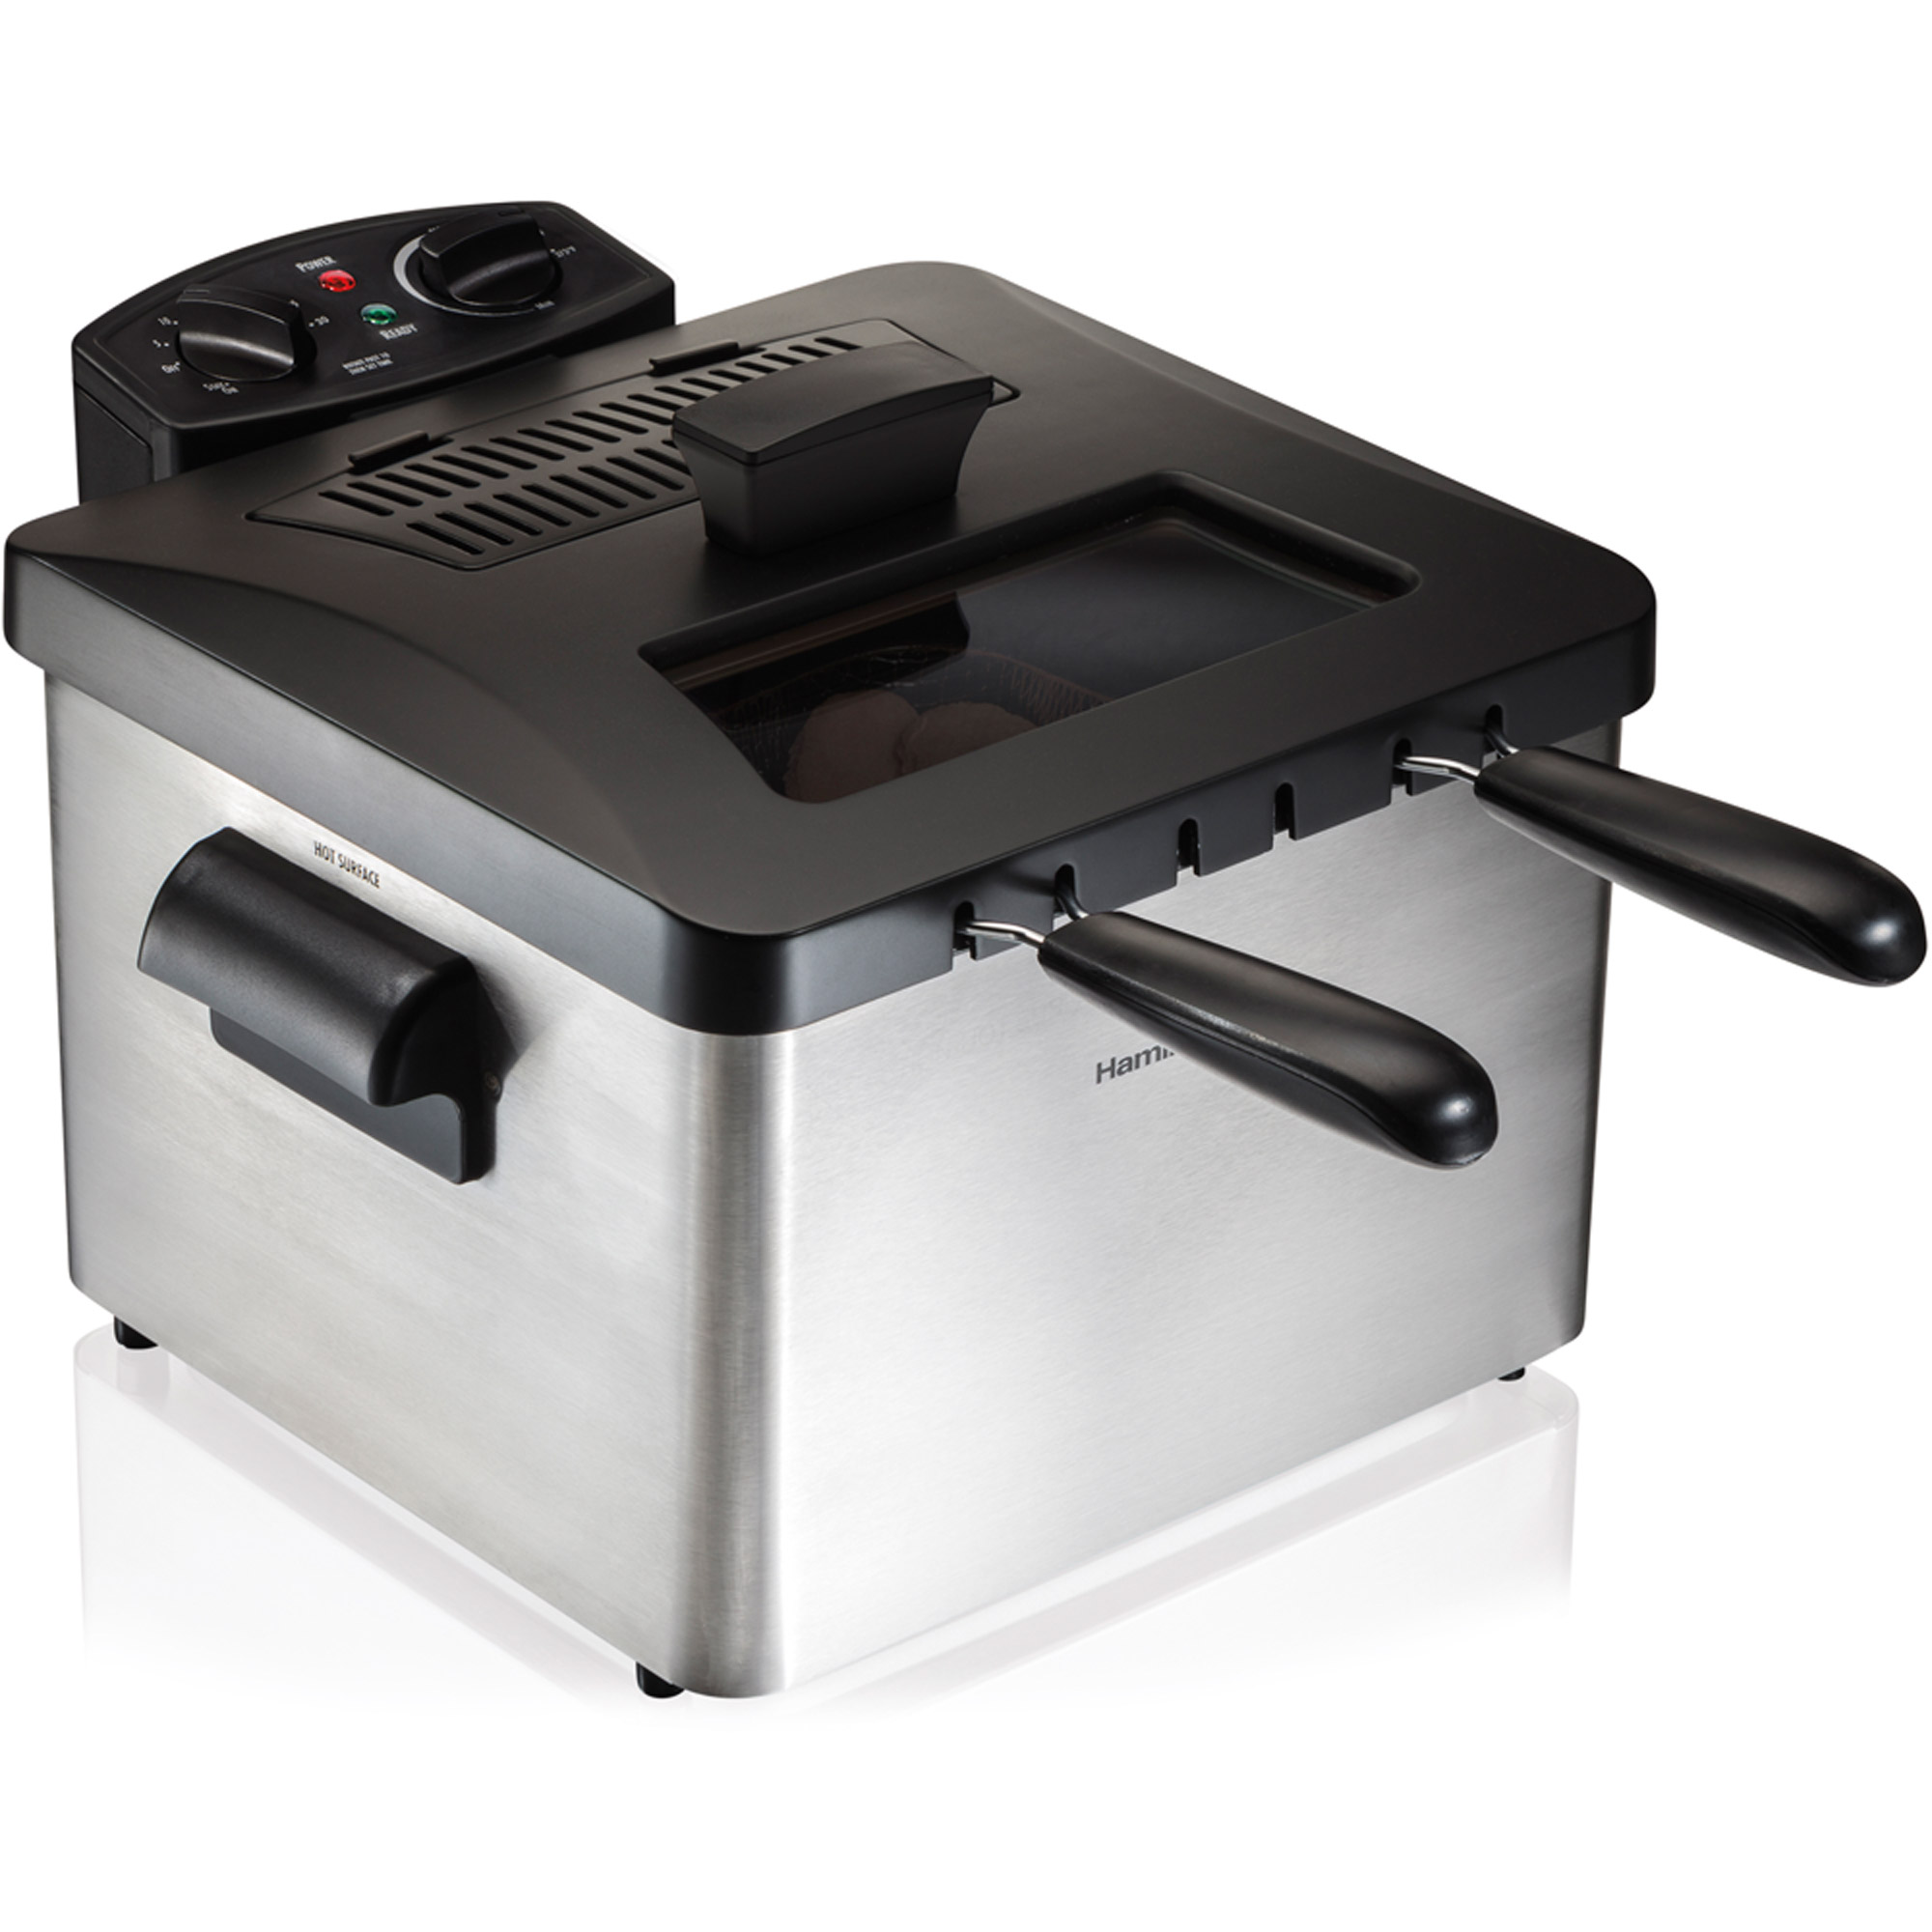 Hamilton Beach Professional-Style Deep Fryer